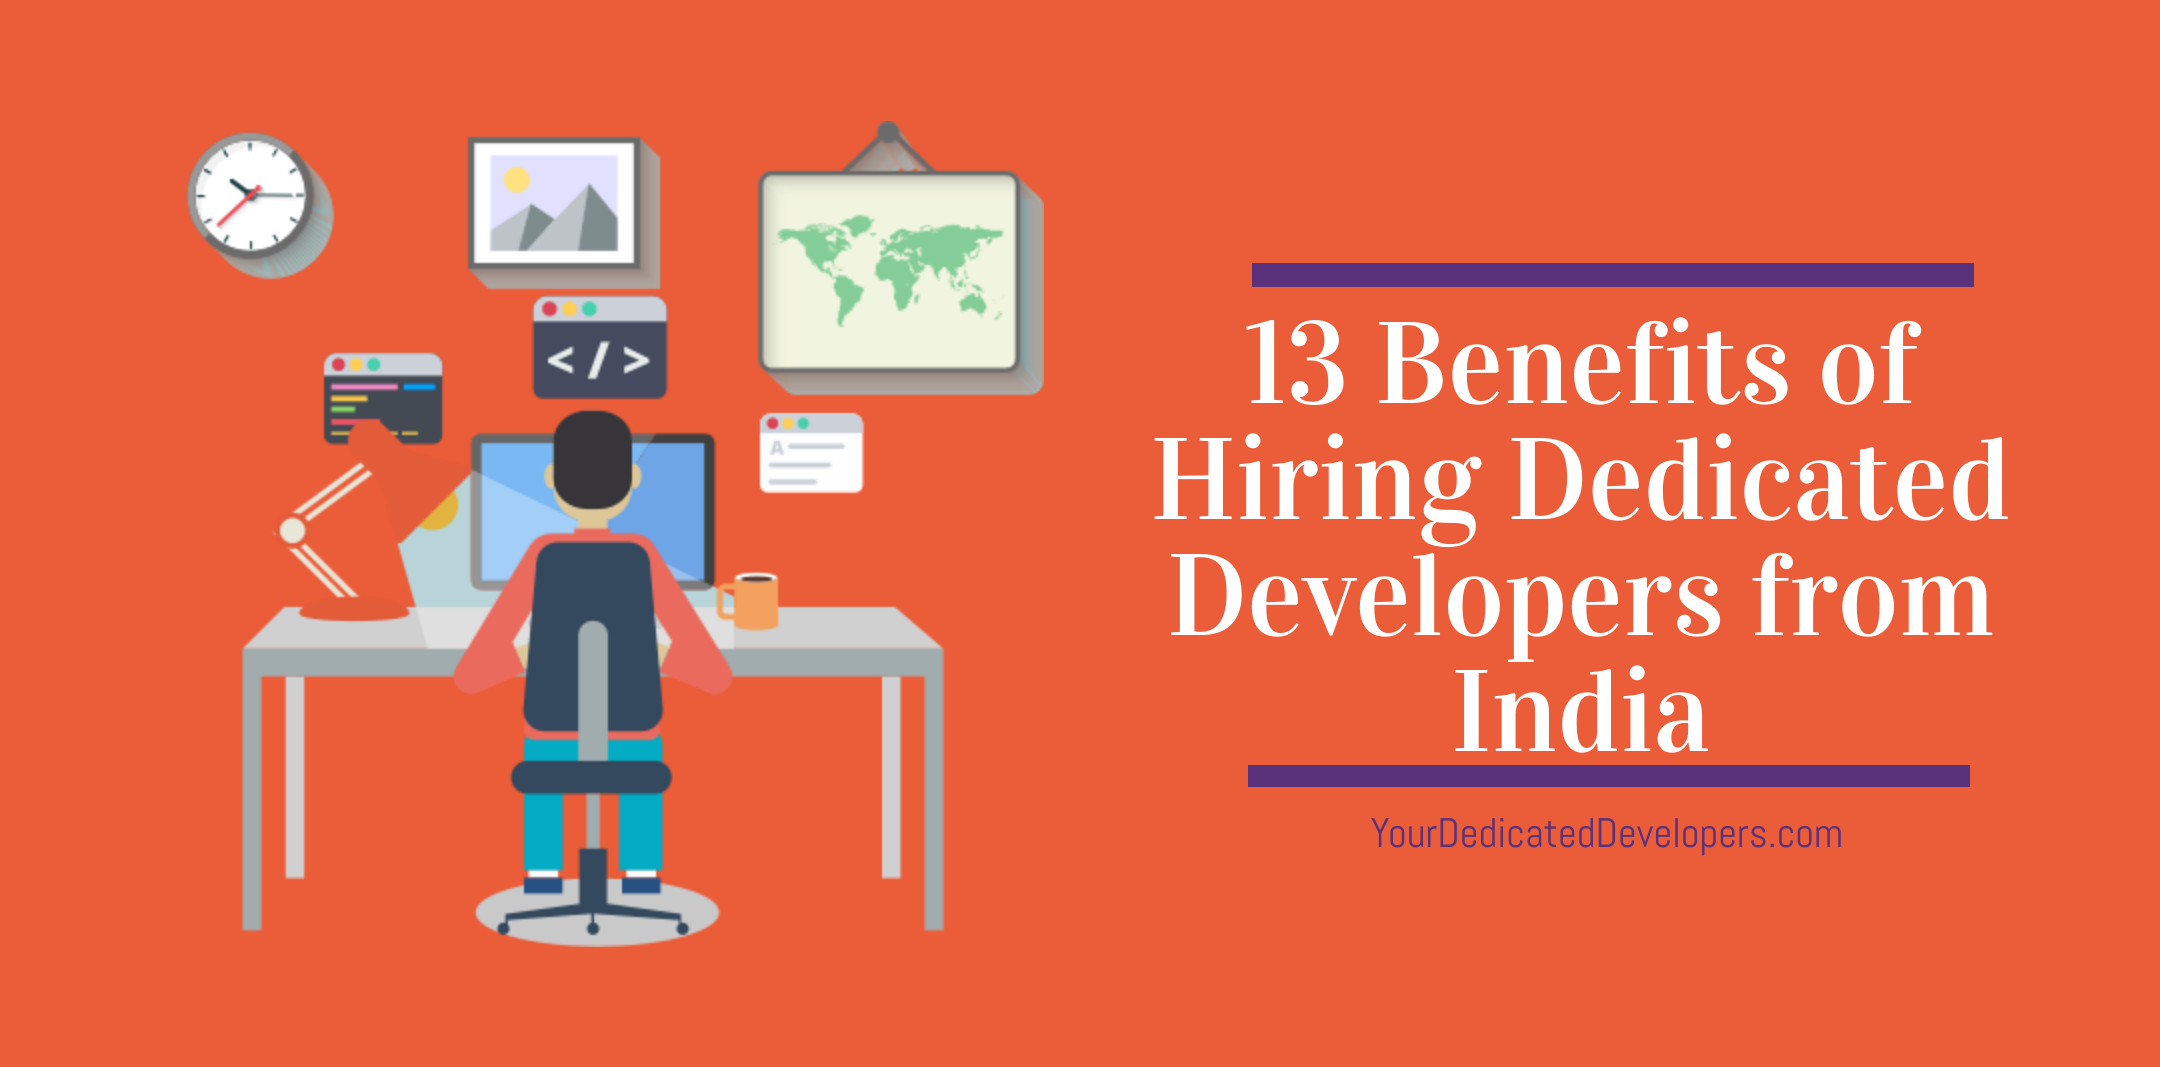 Benefits of hiring dedicated developers from India.